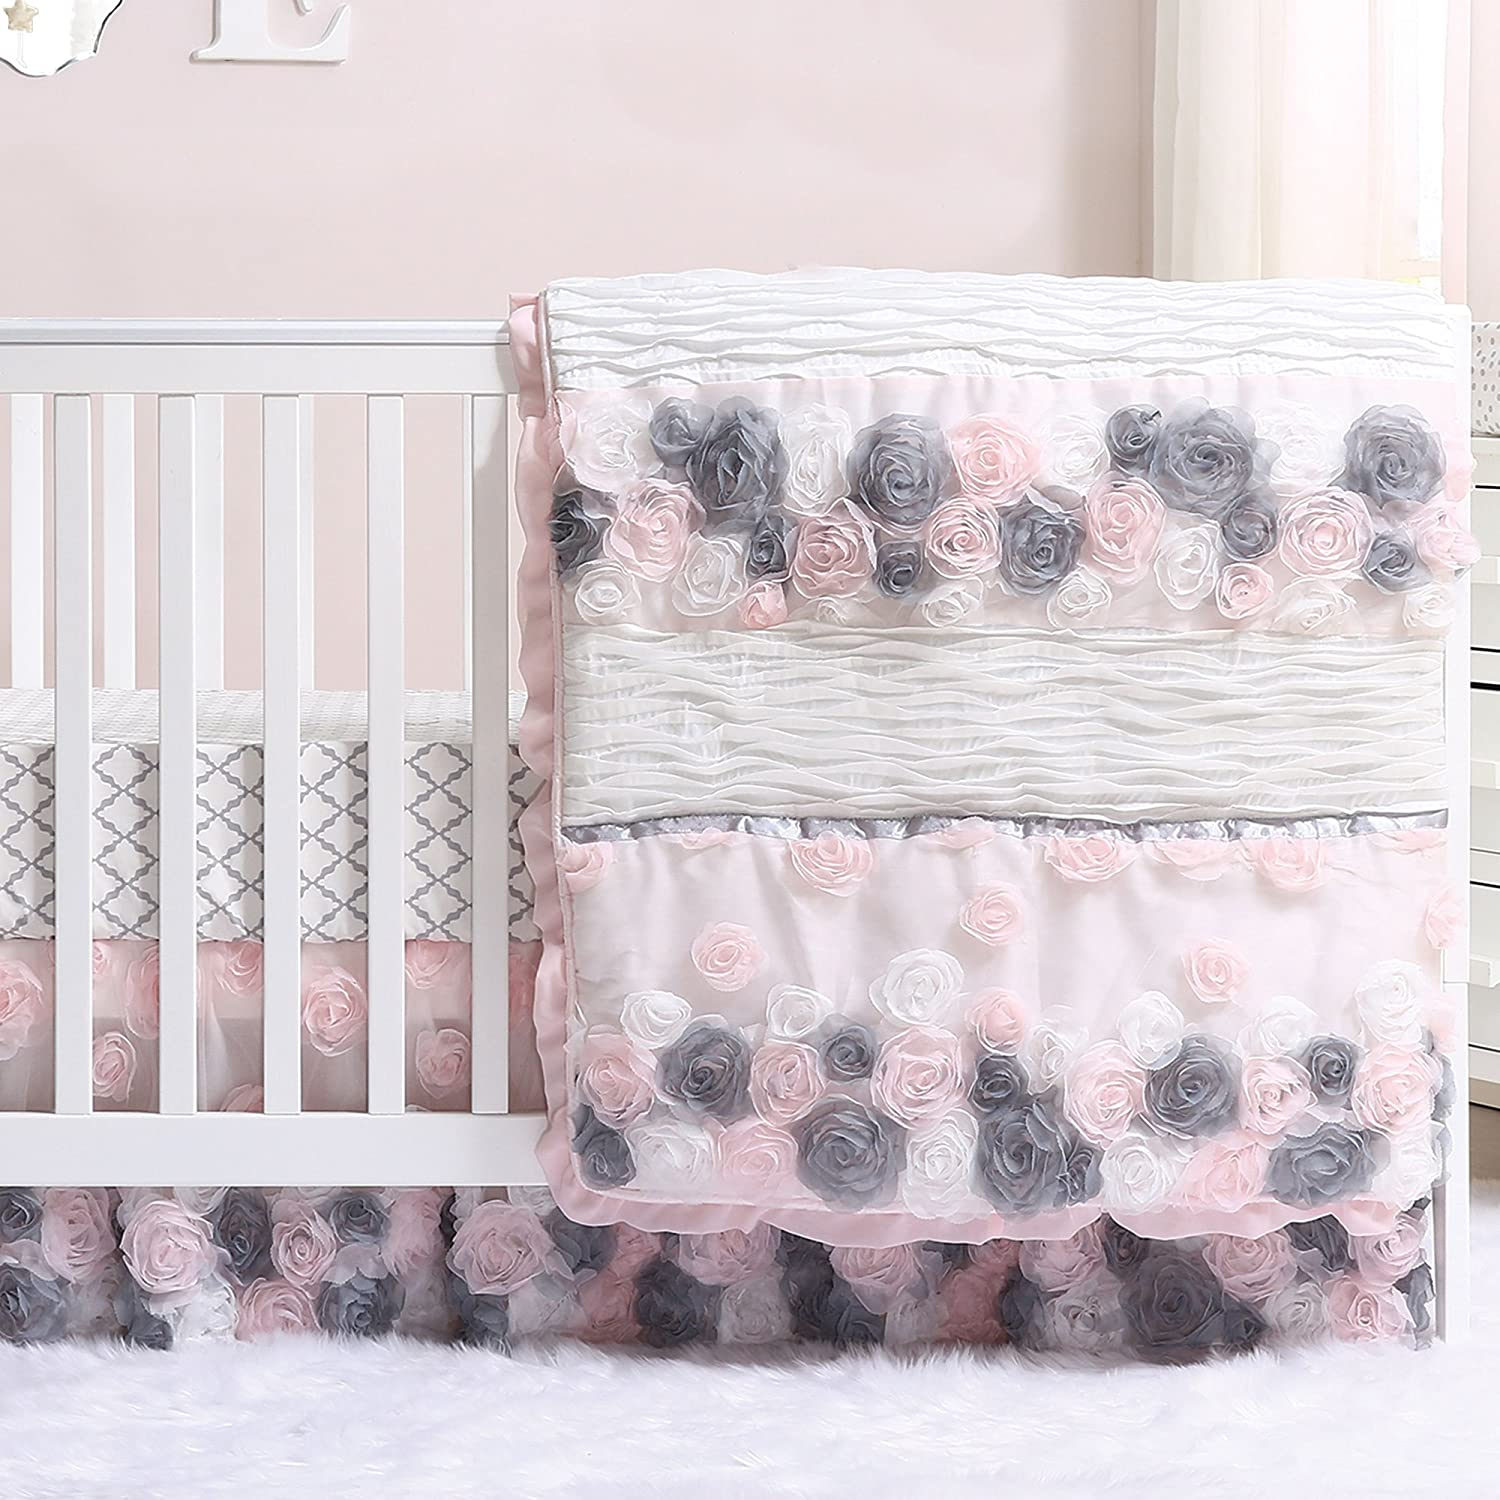 Colette Pink and Grey Floral 3 Piece Crib Bedding Set by The Peanut Shell Farallon Brands FARCOLETTE3